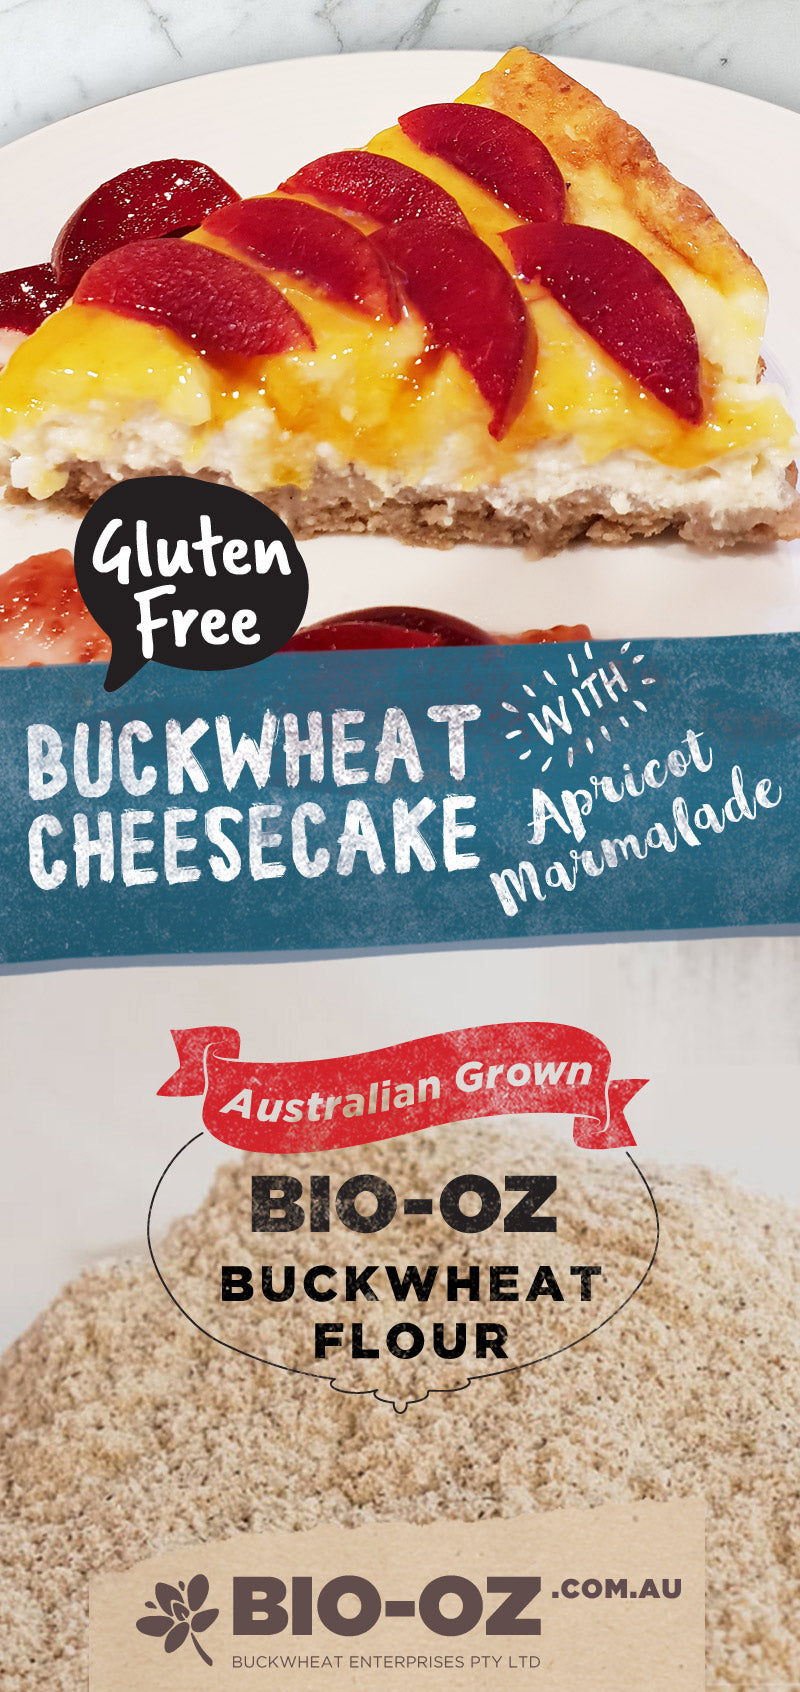 Bio-Oz buckwheat cheesecake with apricot marmalade